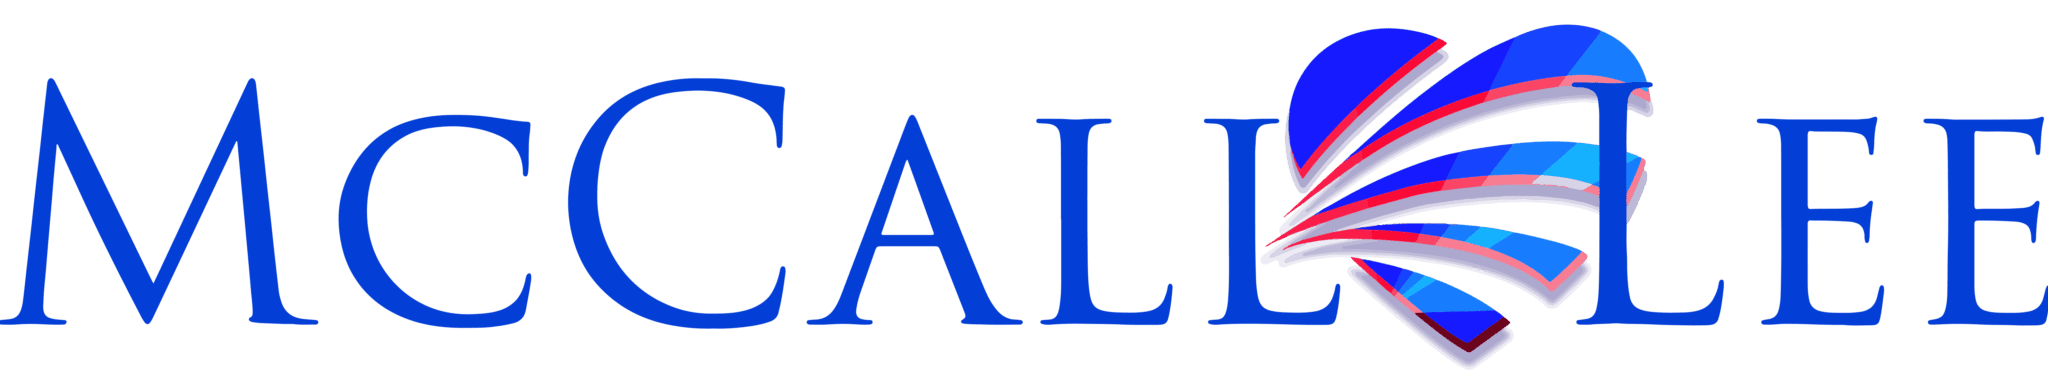 McCall and Lee's logo